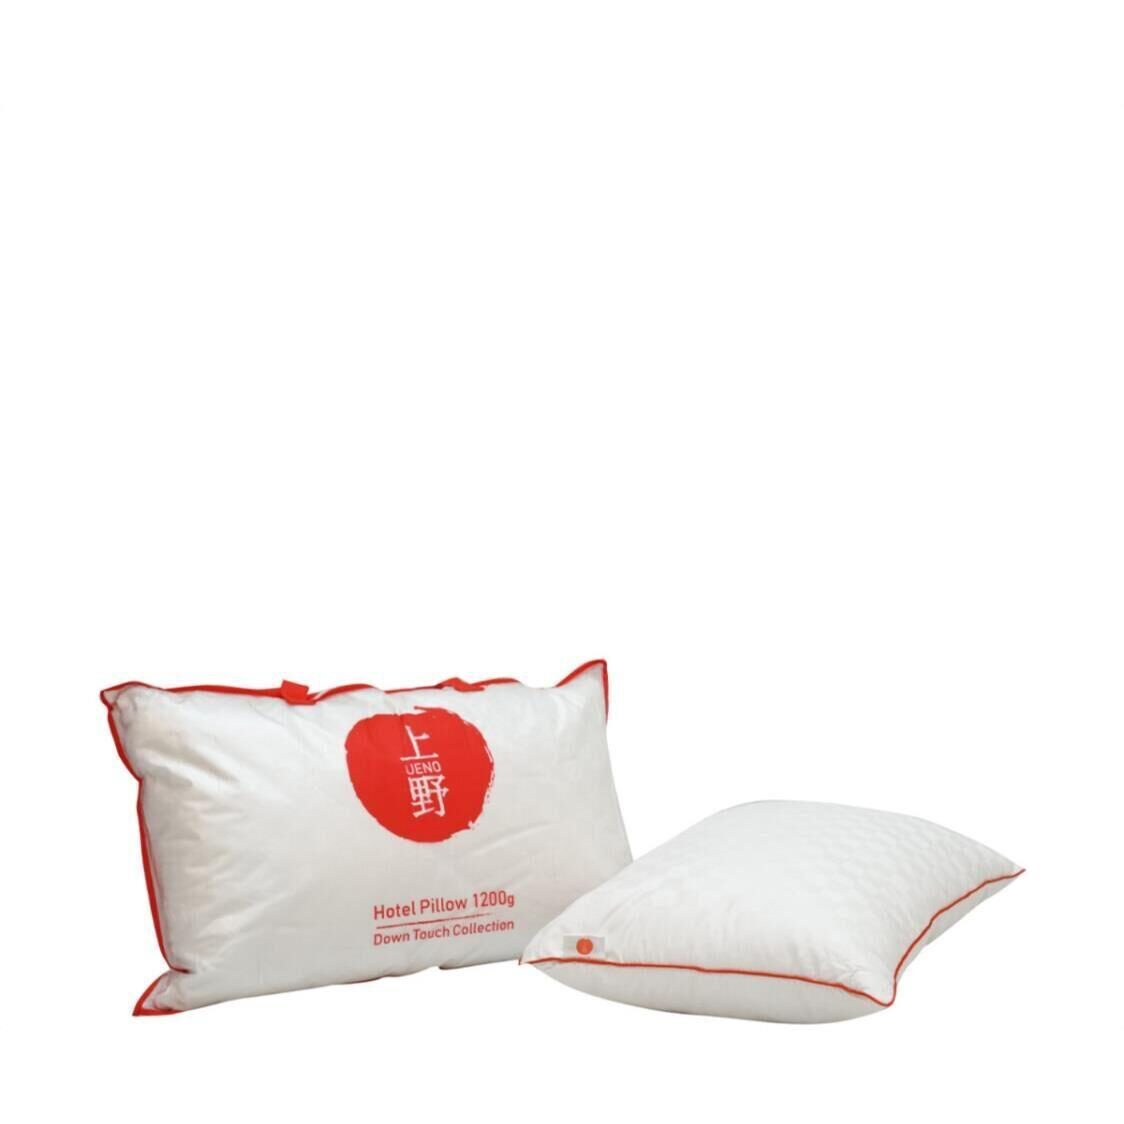 Ueno Down Touch 1200g Pillow